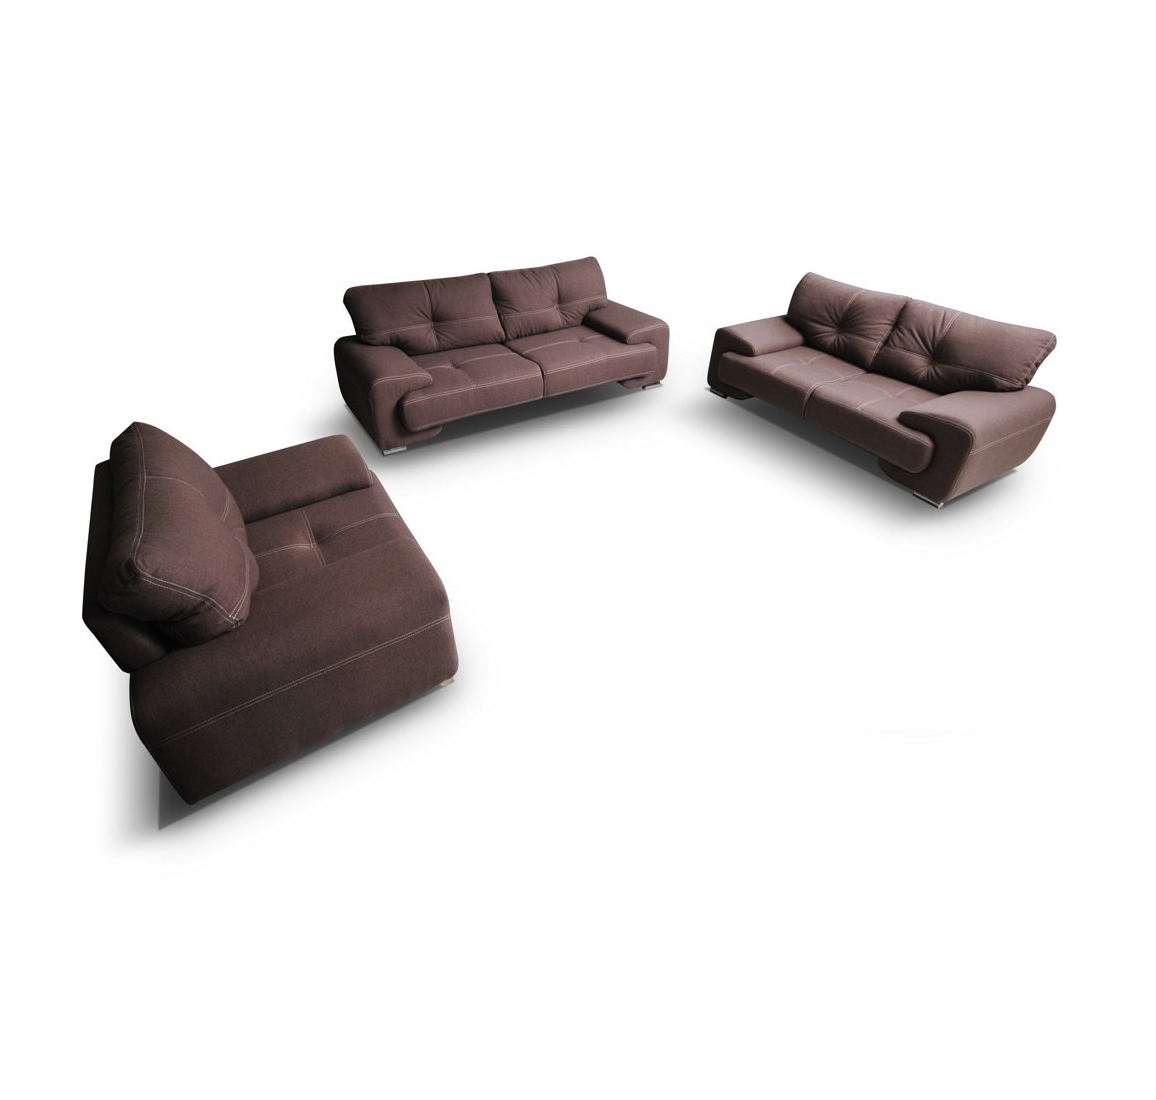 sofagarnitur sofa set couch 3er 2er sessel 3 2 1 braun stoffsofa webstoff enzo ebay. Black Bedroom Furniture Sets. Home Design Ideas